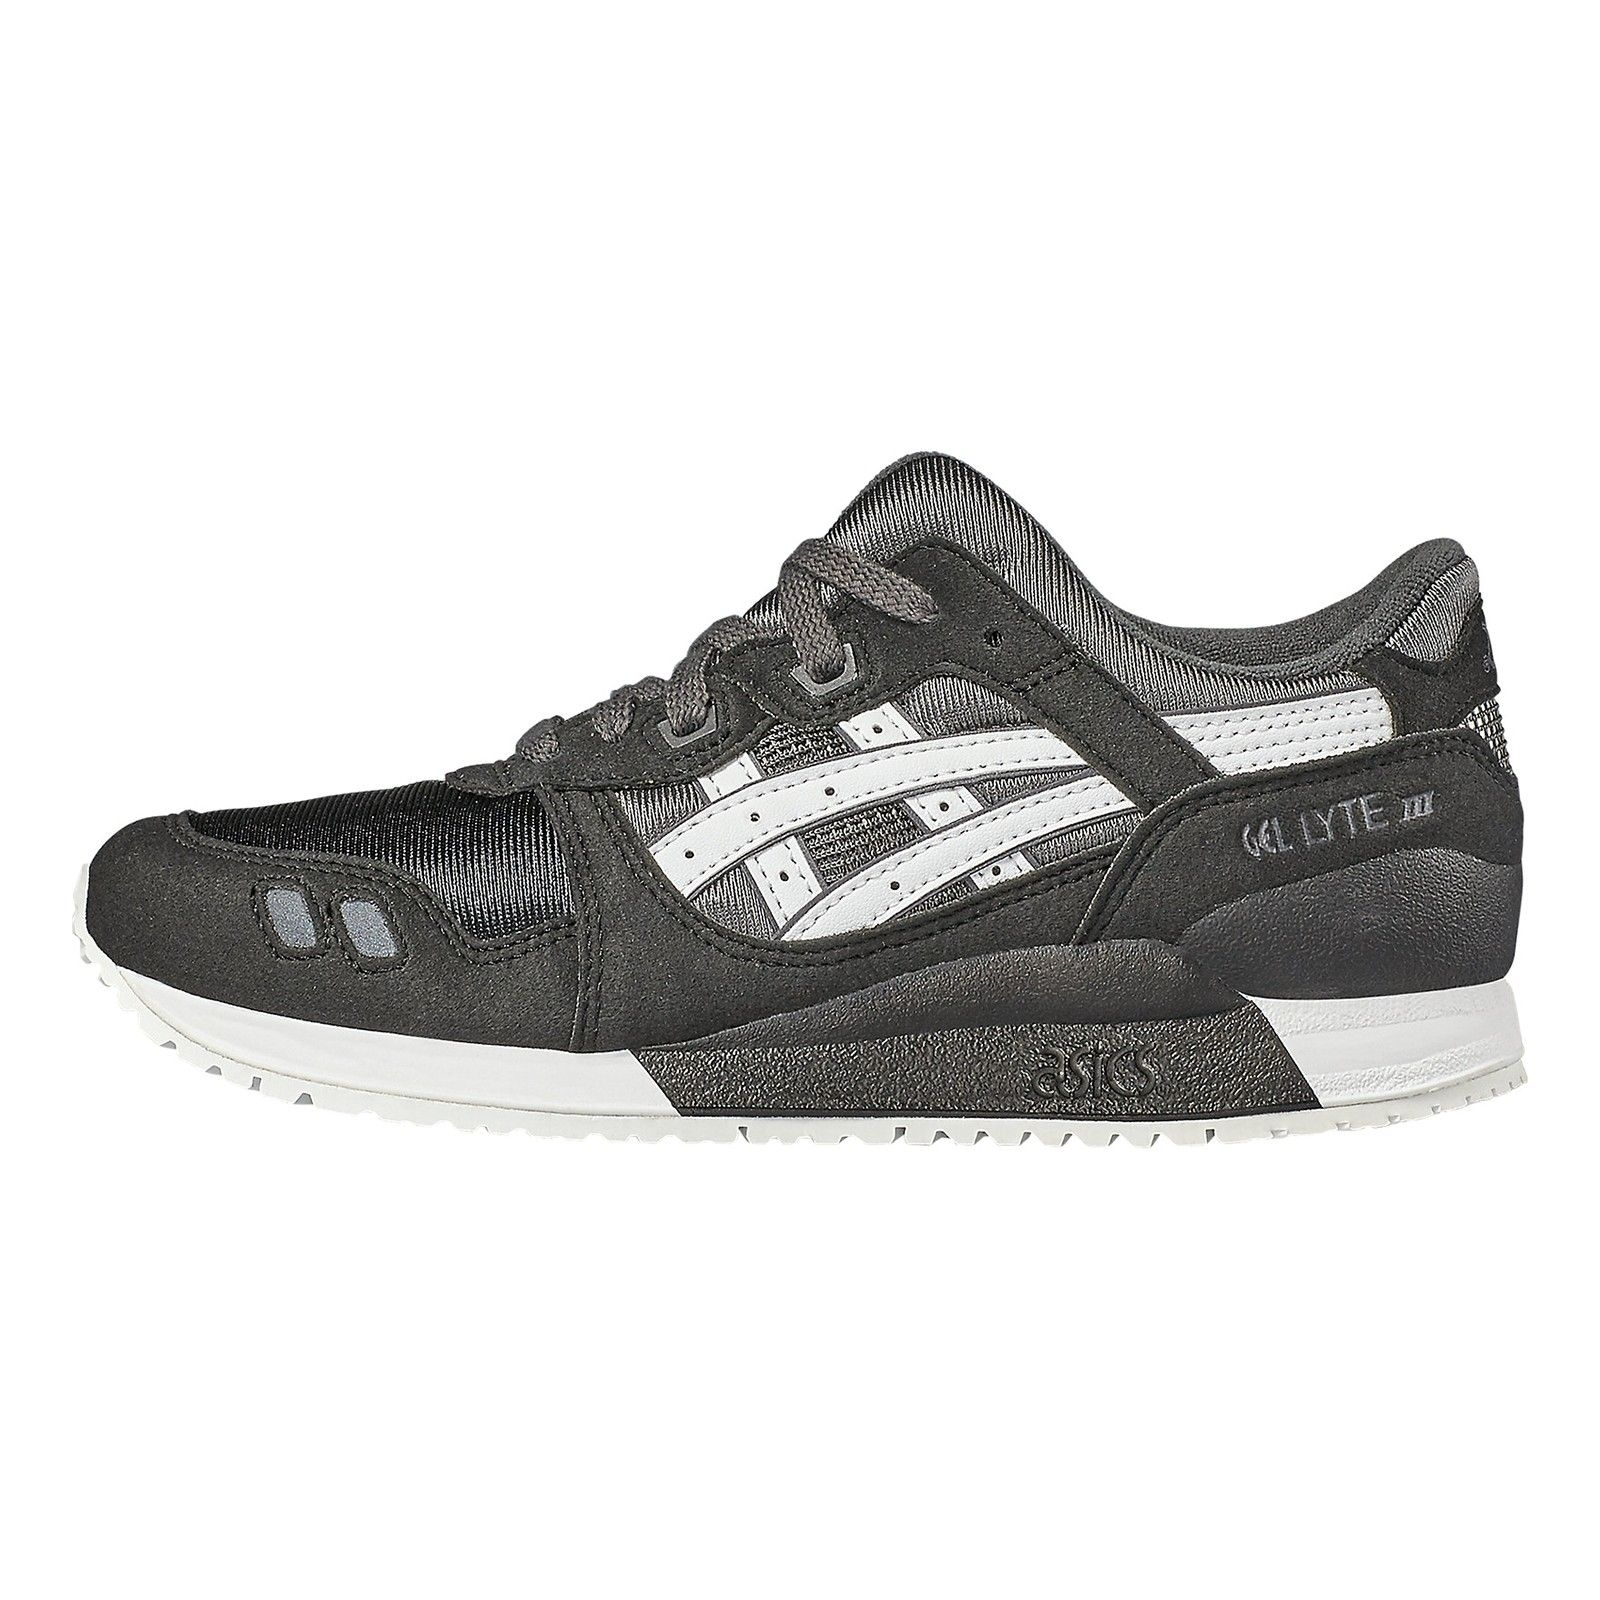 763df60ae98b4 Basket Asics Gel Lyte 3 Junior - C5A4N-9501 - Pegashoes